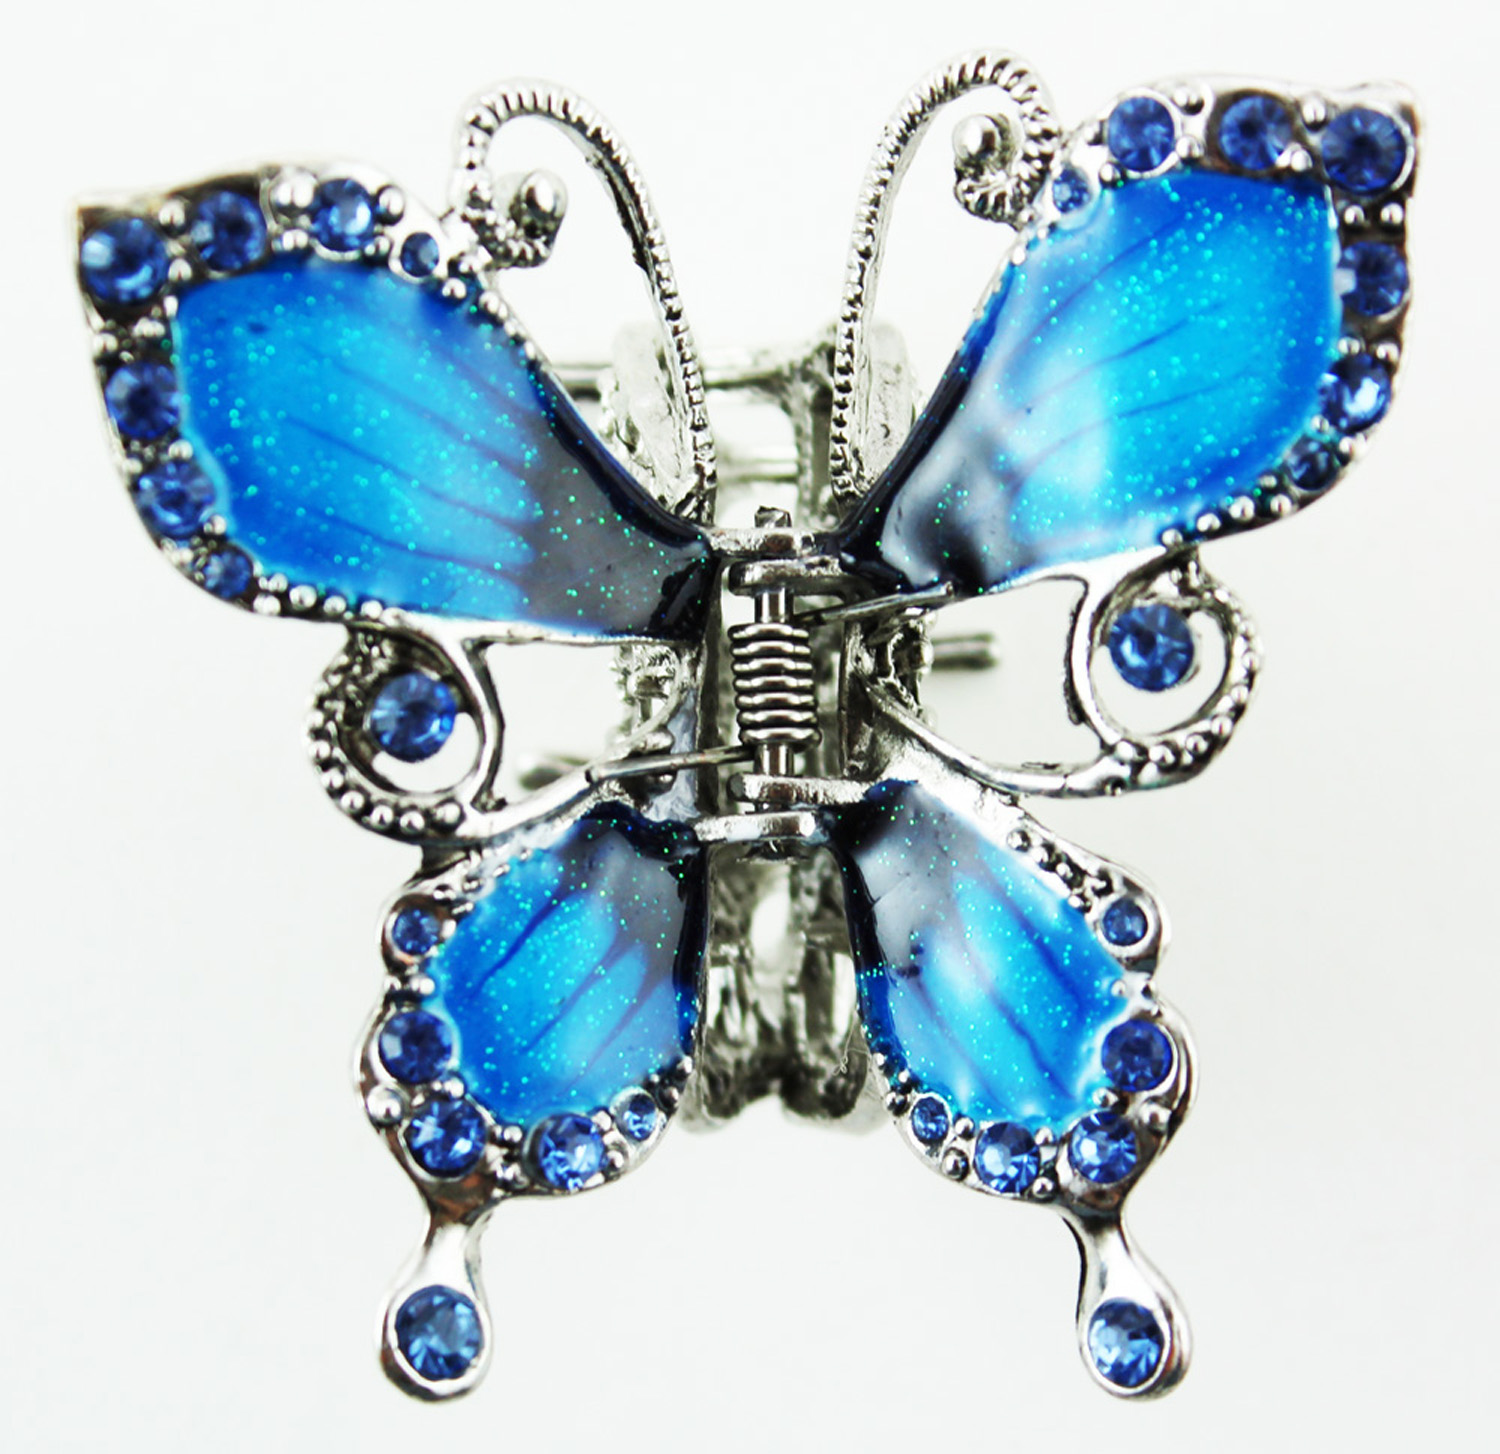 Butterfly Hair Clip - Silver Tone Butterfly Hair Accessory (Blue)